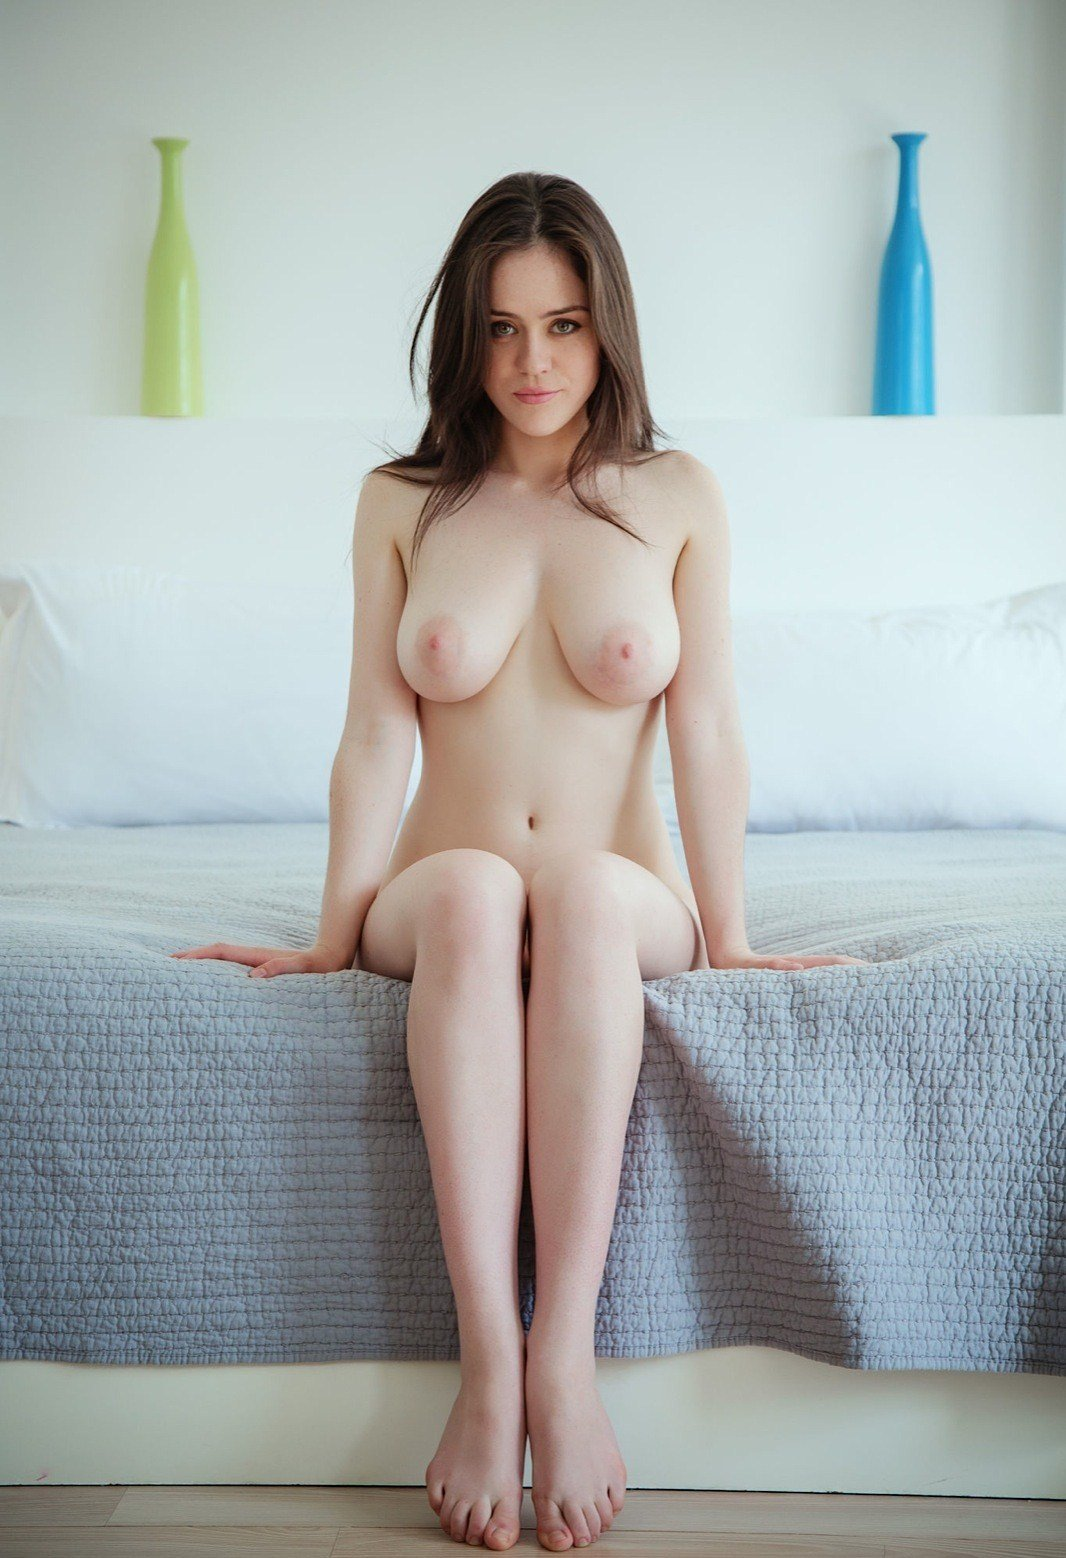 My wife want friend in front of me